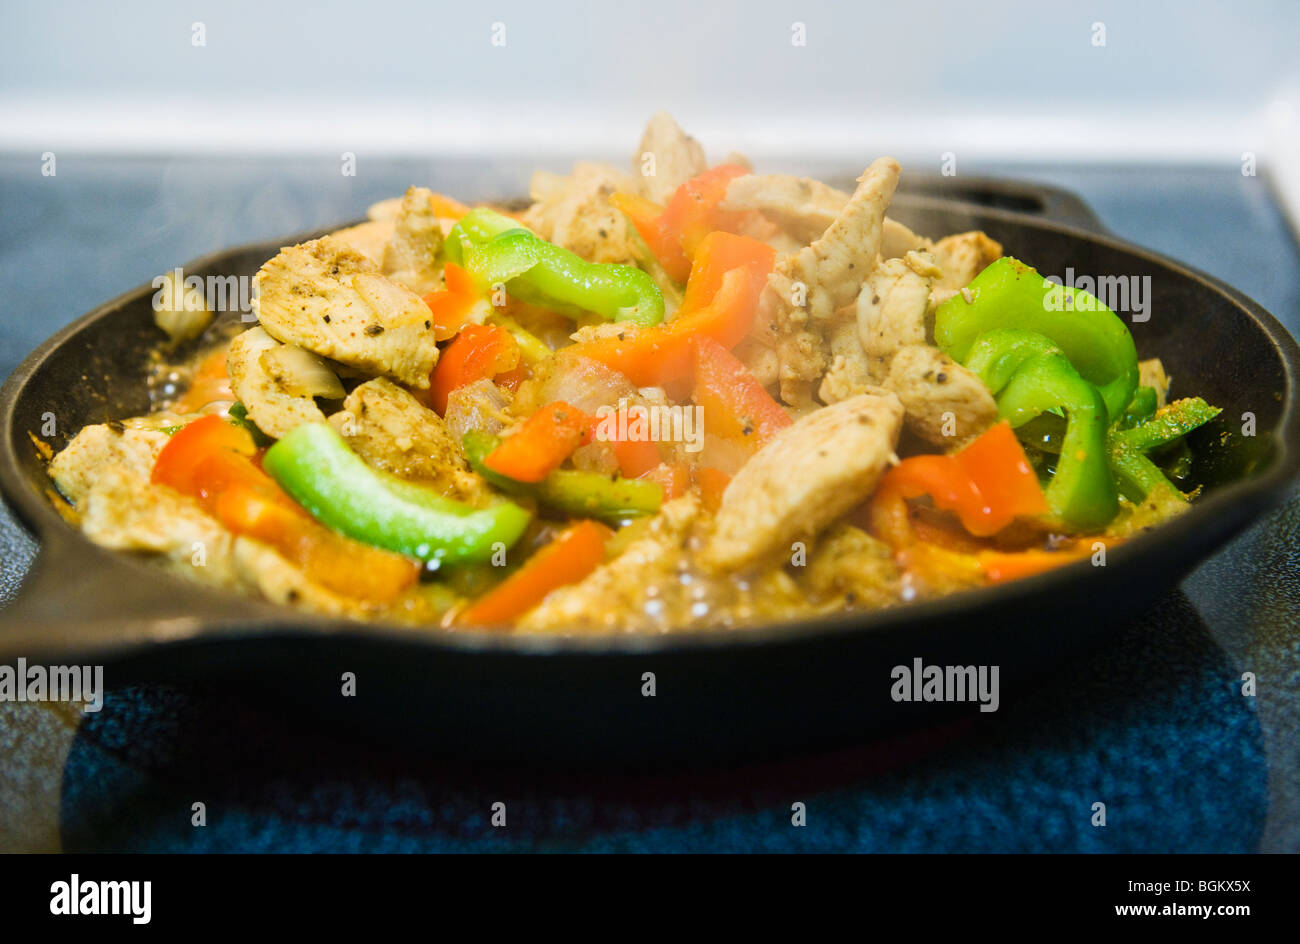 Chicken Fajitas cooking in a iron skillet on a stove top. - Stock Image